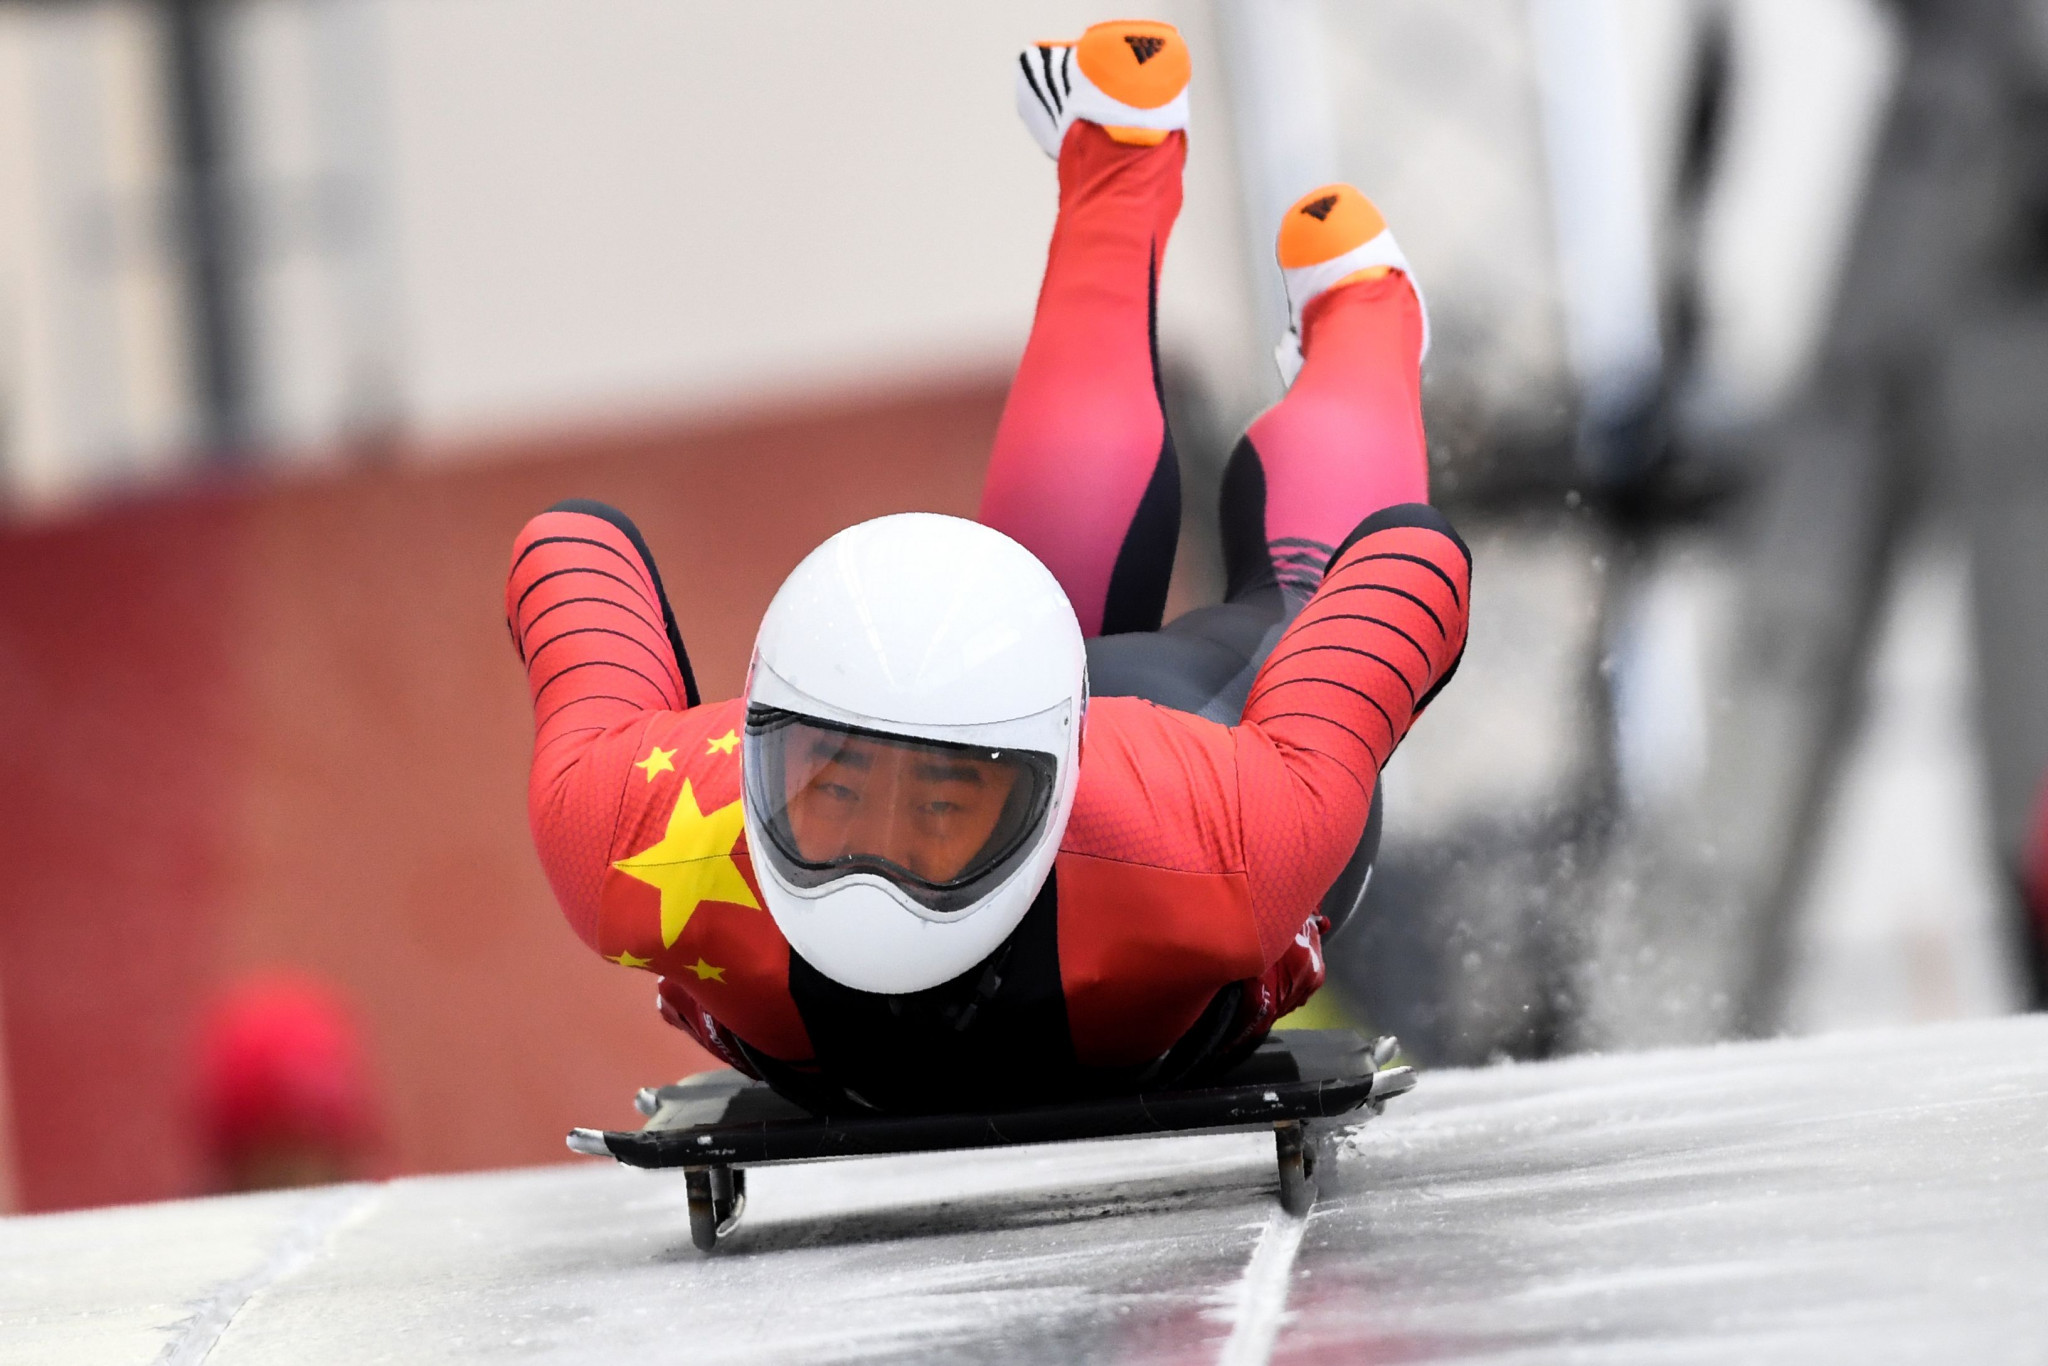 Wenqiang Geng's podium finish was reportedly seen by 13 million people in China ©Getty Images